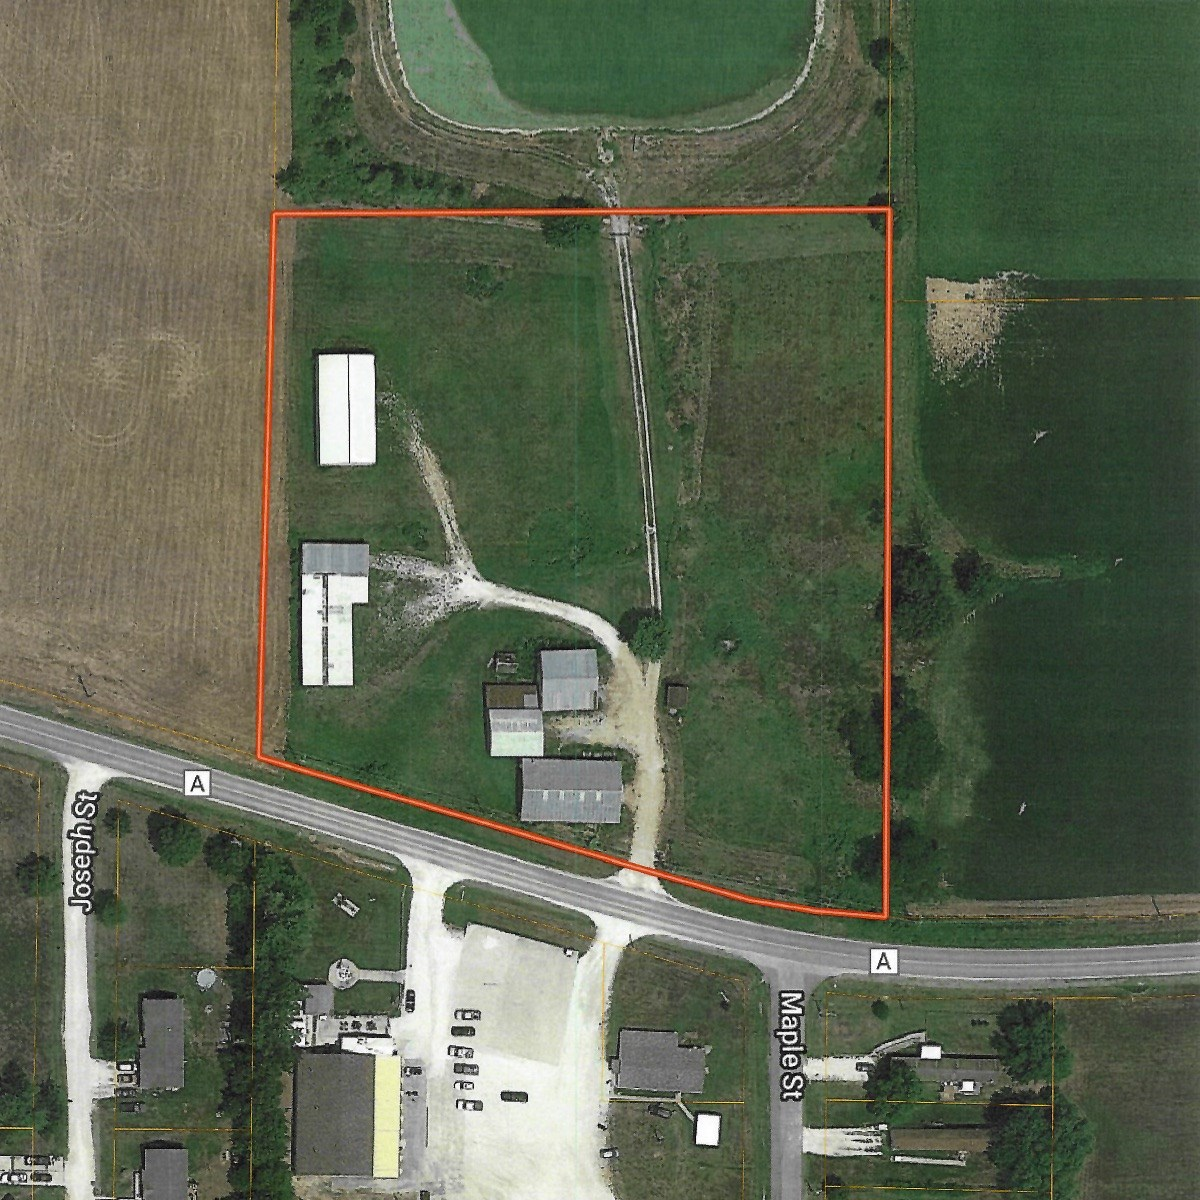 Storage Buildings and Lot for sale in Lincoln County, MO!